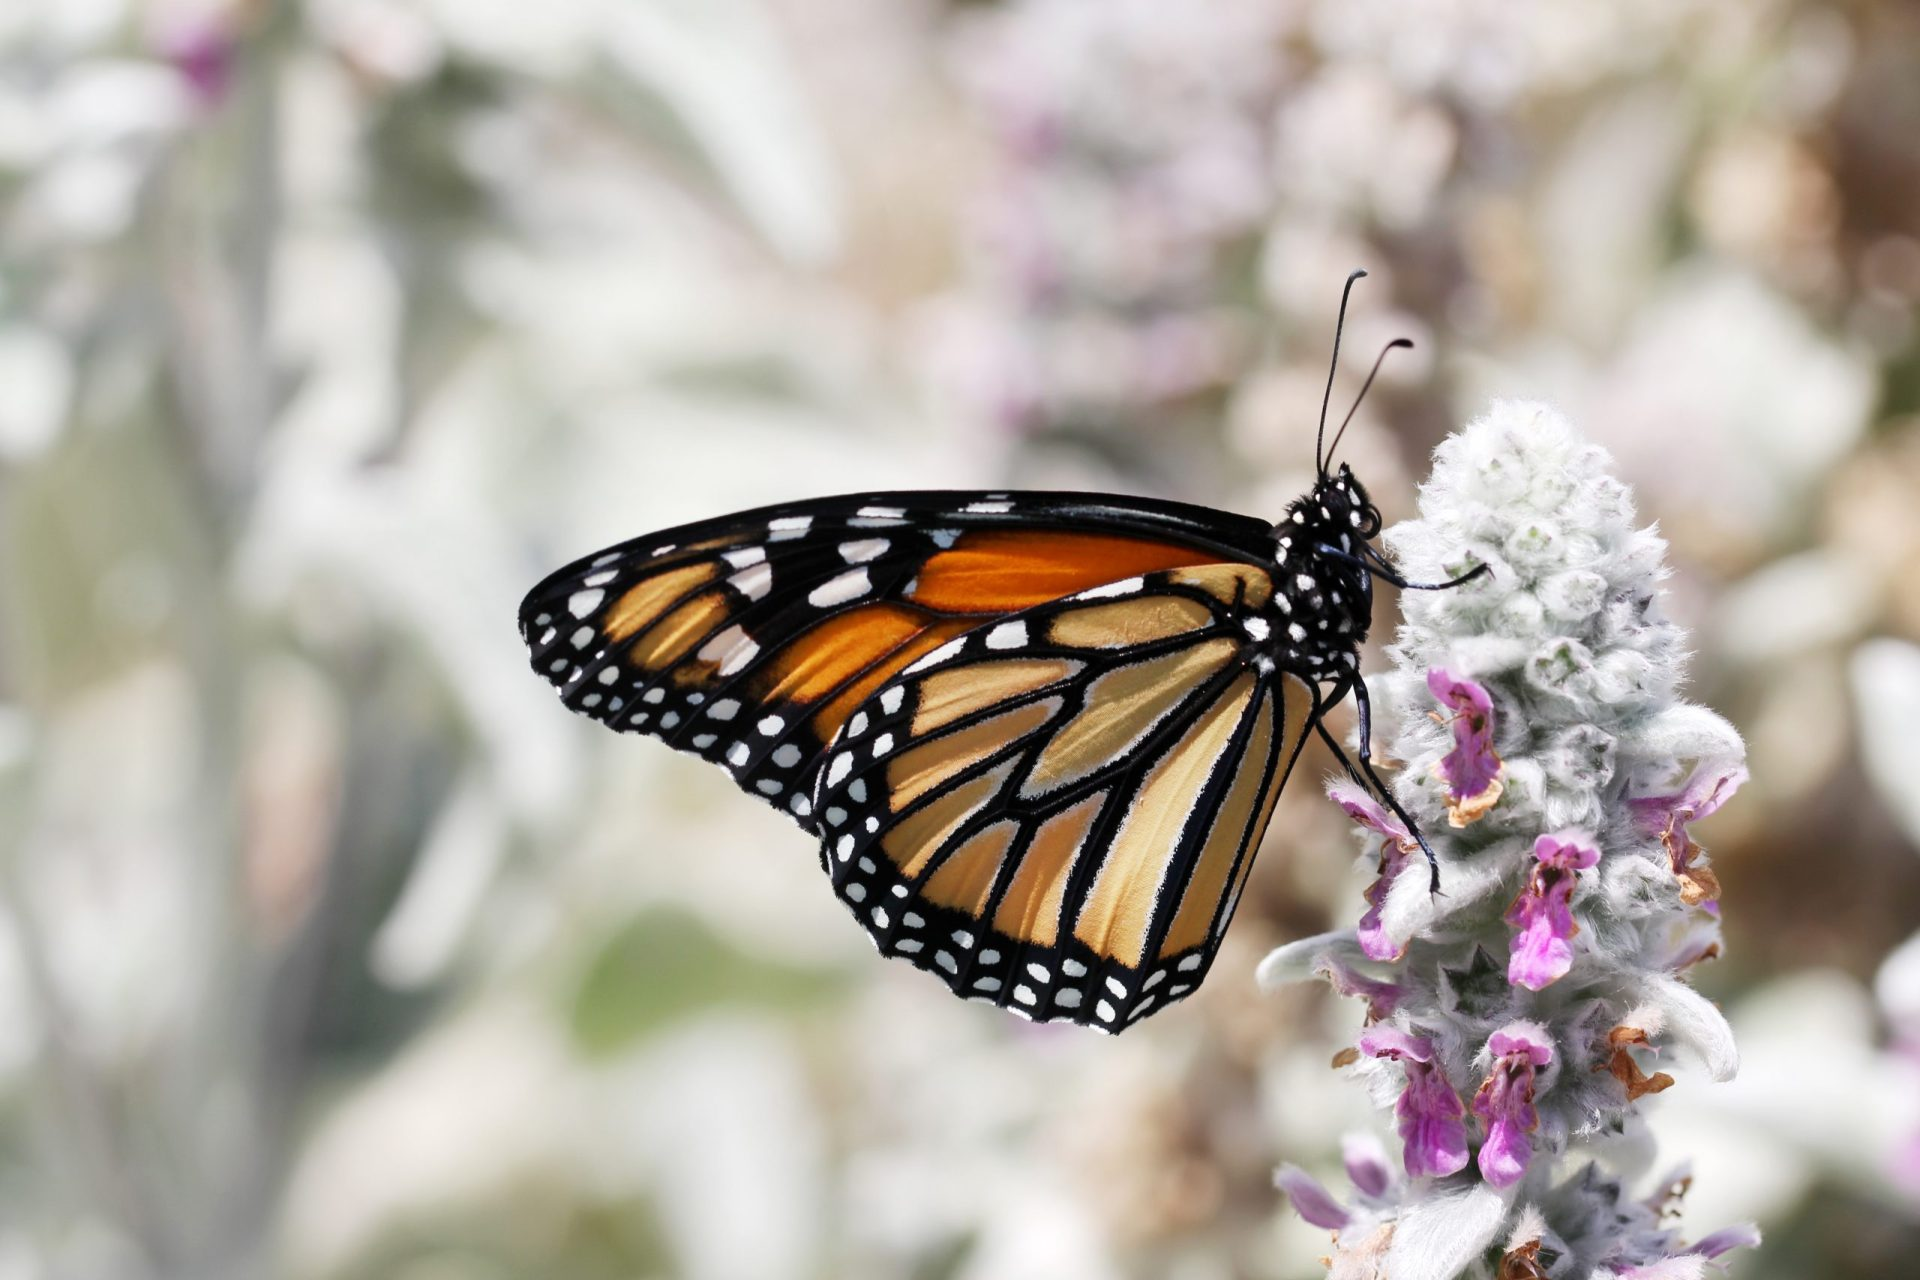 A Monarch butterfly sitting on a flower.